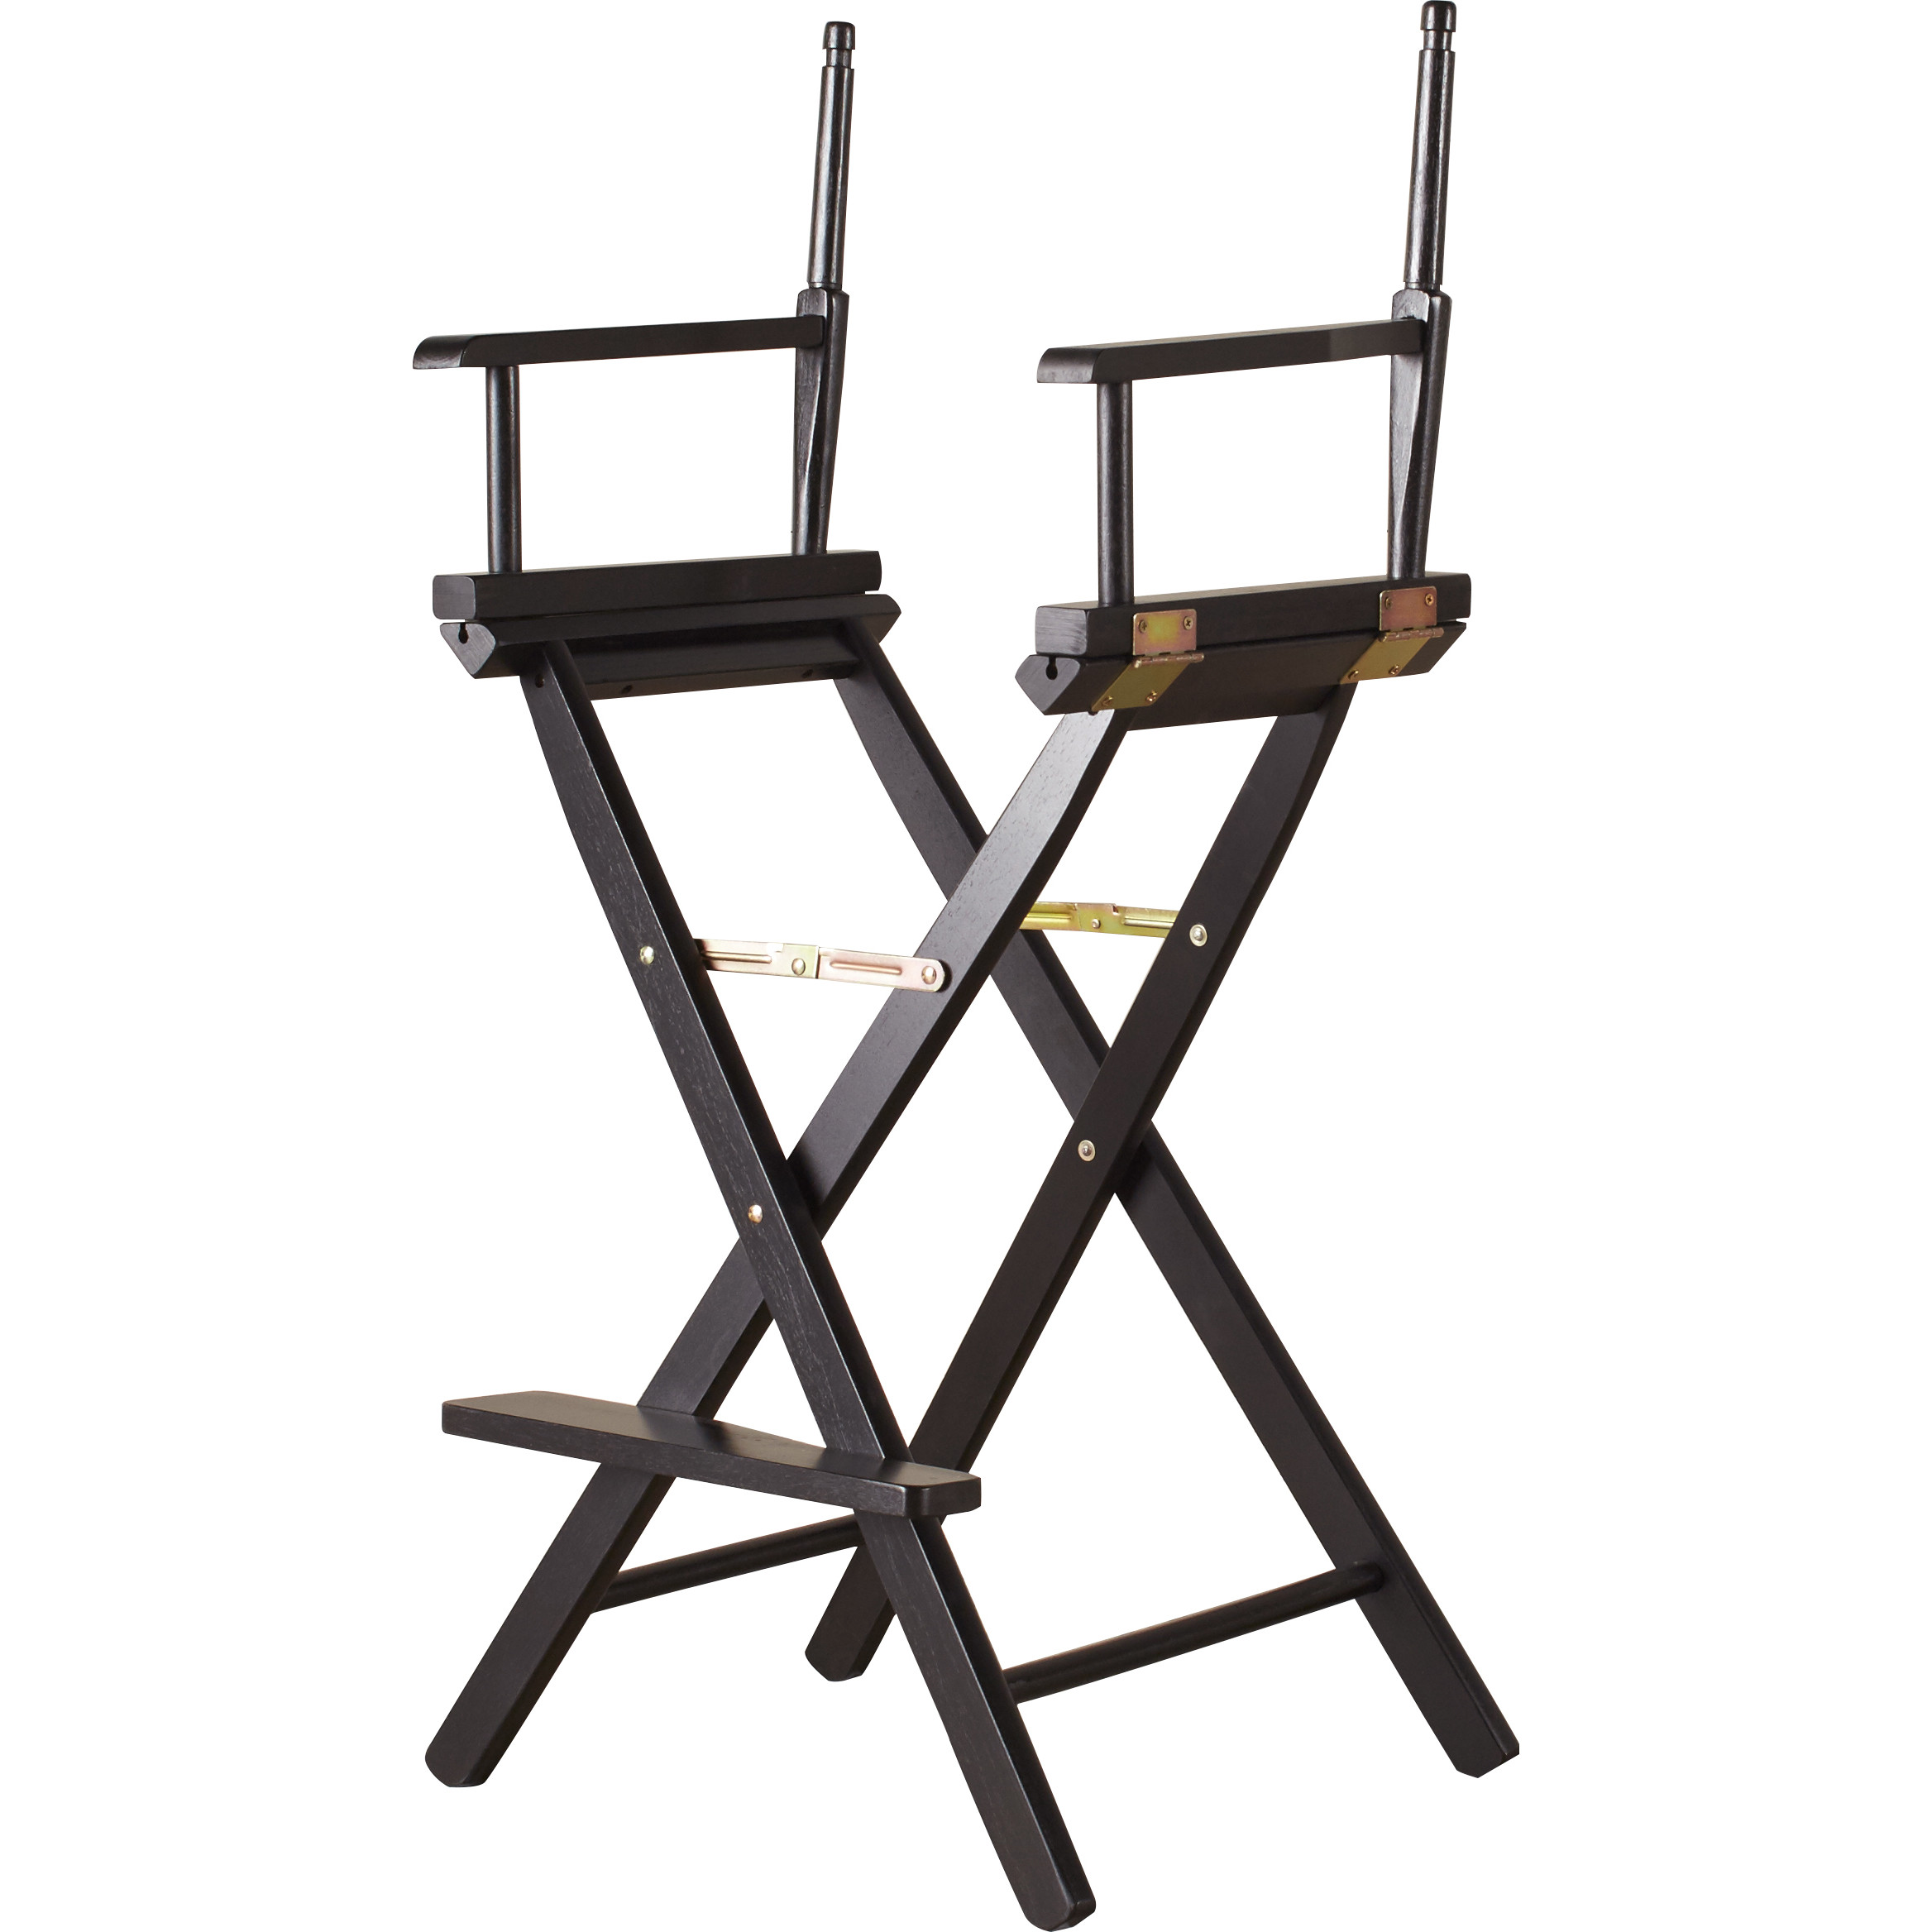 Attractive Directors Chair Replacement Canvas for Best Director Chair Ideas: Deck Chair Fabric Replacement | Directors Chair Replacement Canvas | Pier 1 Imports Directors Chair